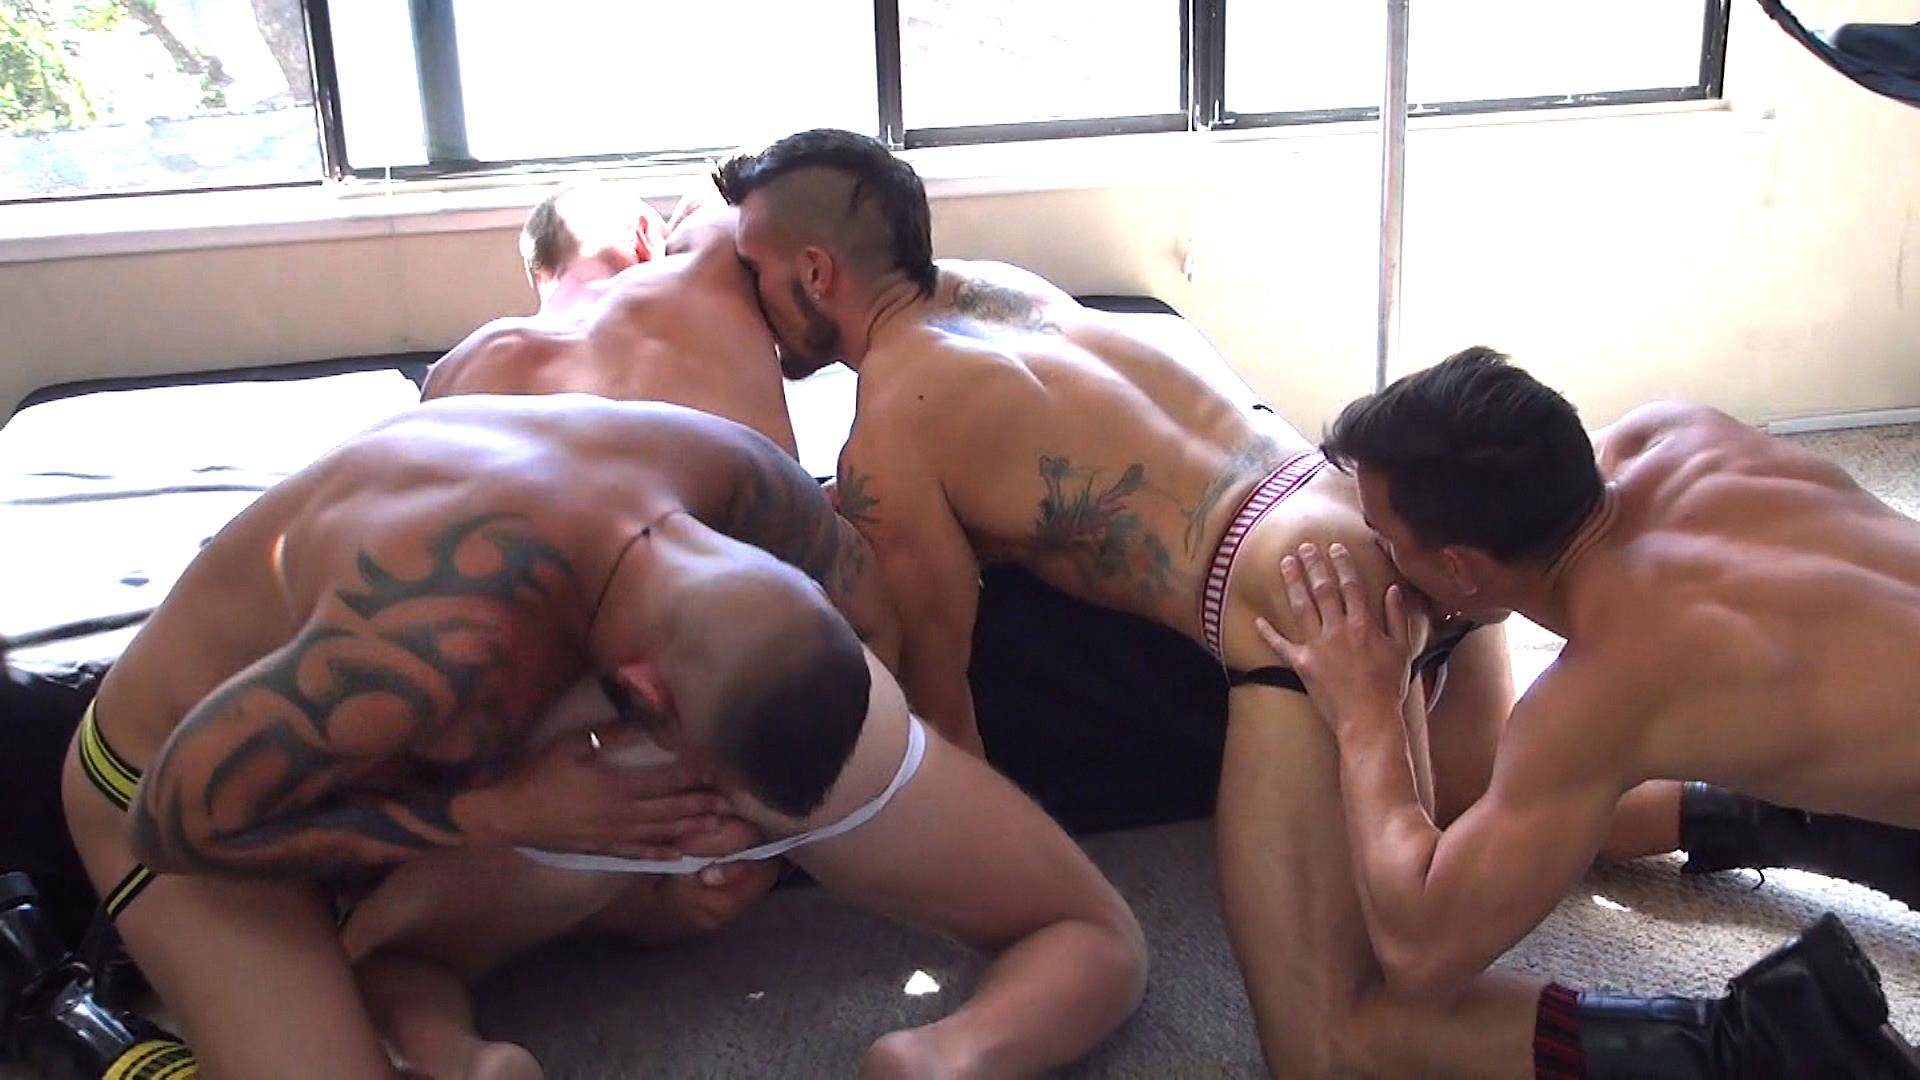 Raw-Fuck-Club-Derrick-Hanson-and-Aarin-Asker-and-Billy-Warren-and-Adam-Avery-Amateur-Gay-Porn-10 Group Sex Bareback Fucking At The Folsom Street Fair 2015